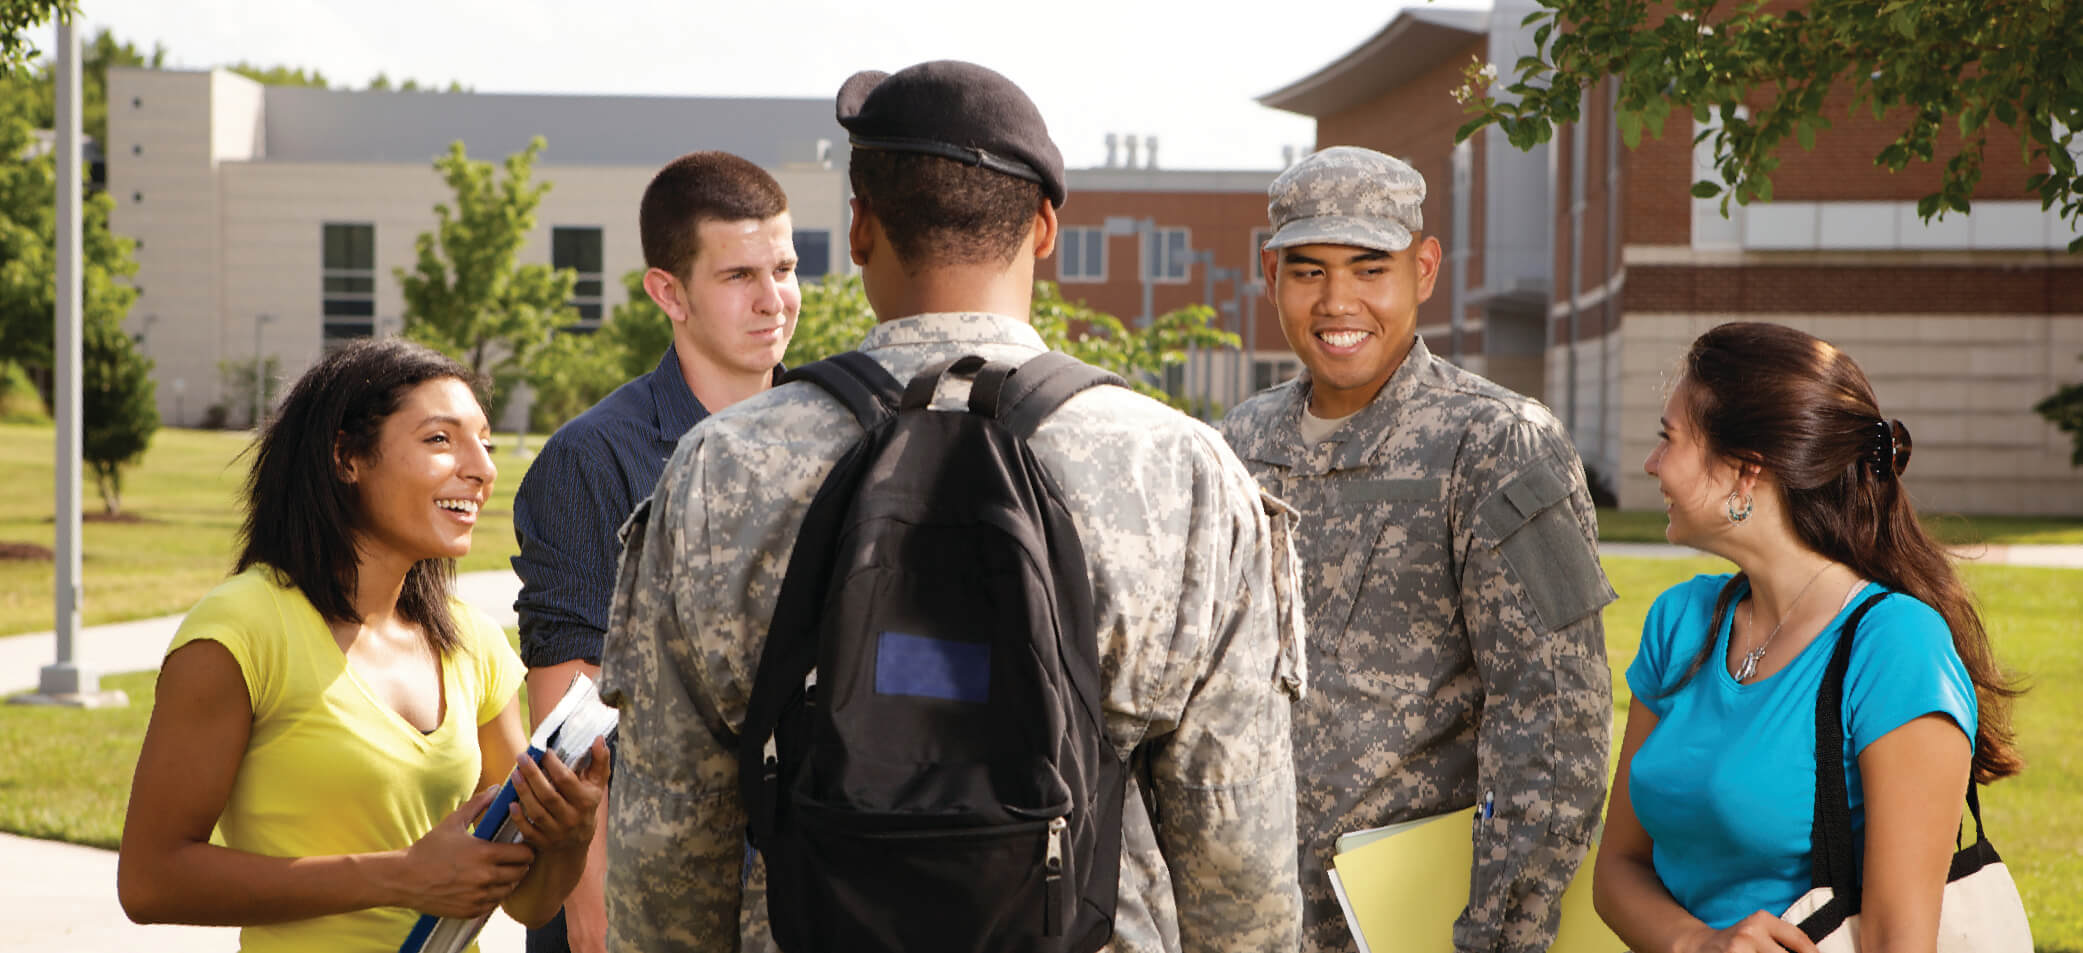 Student service members and other students gather on a campus